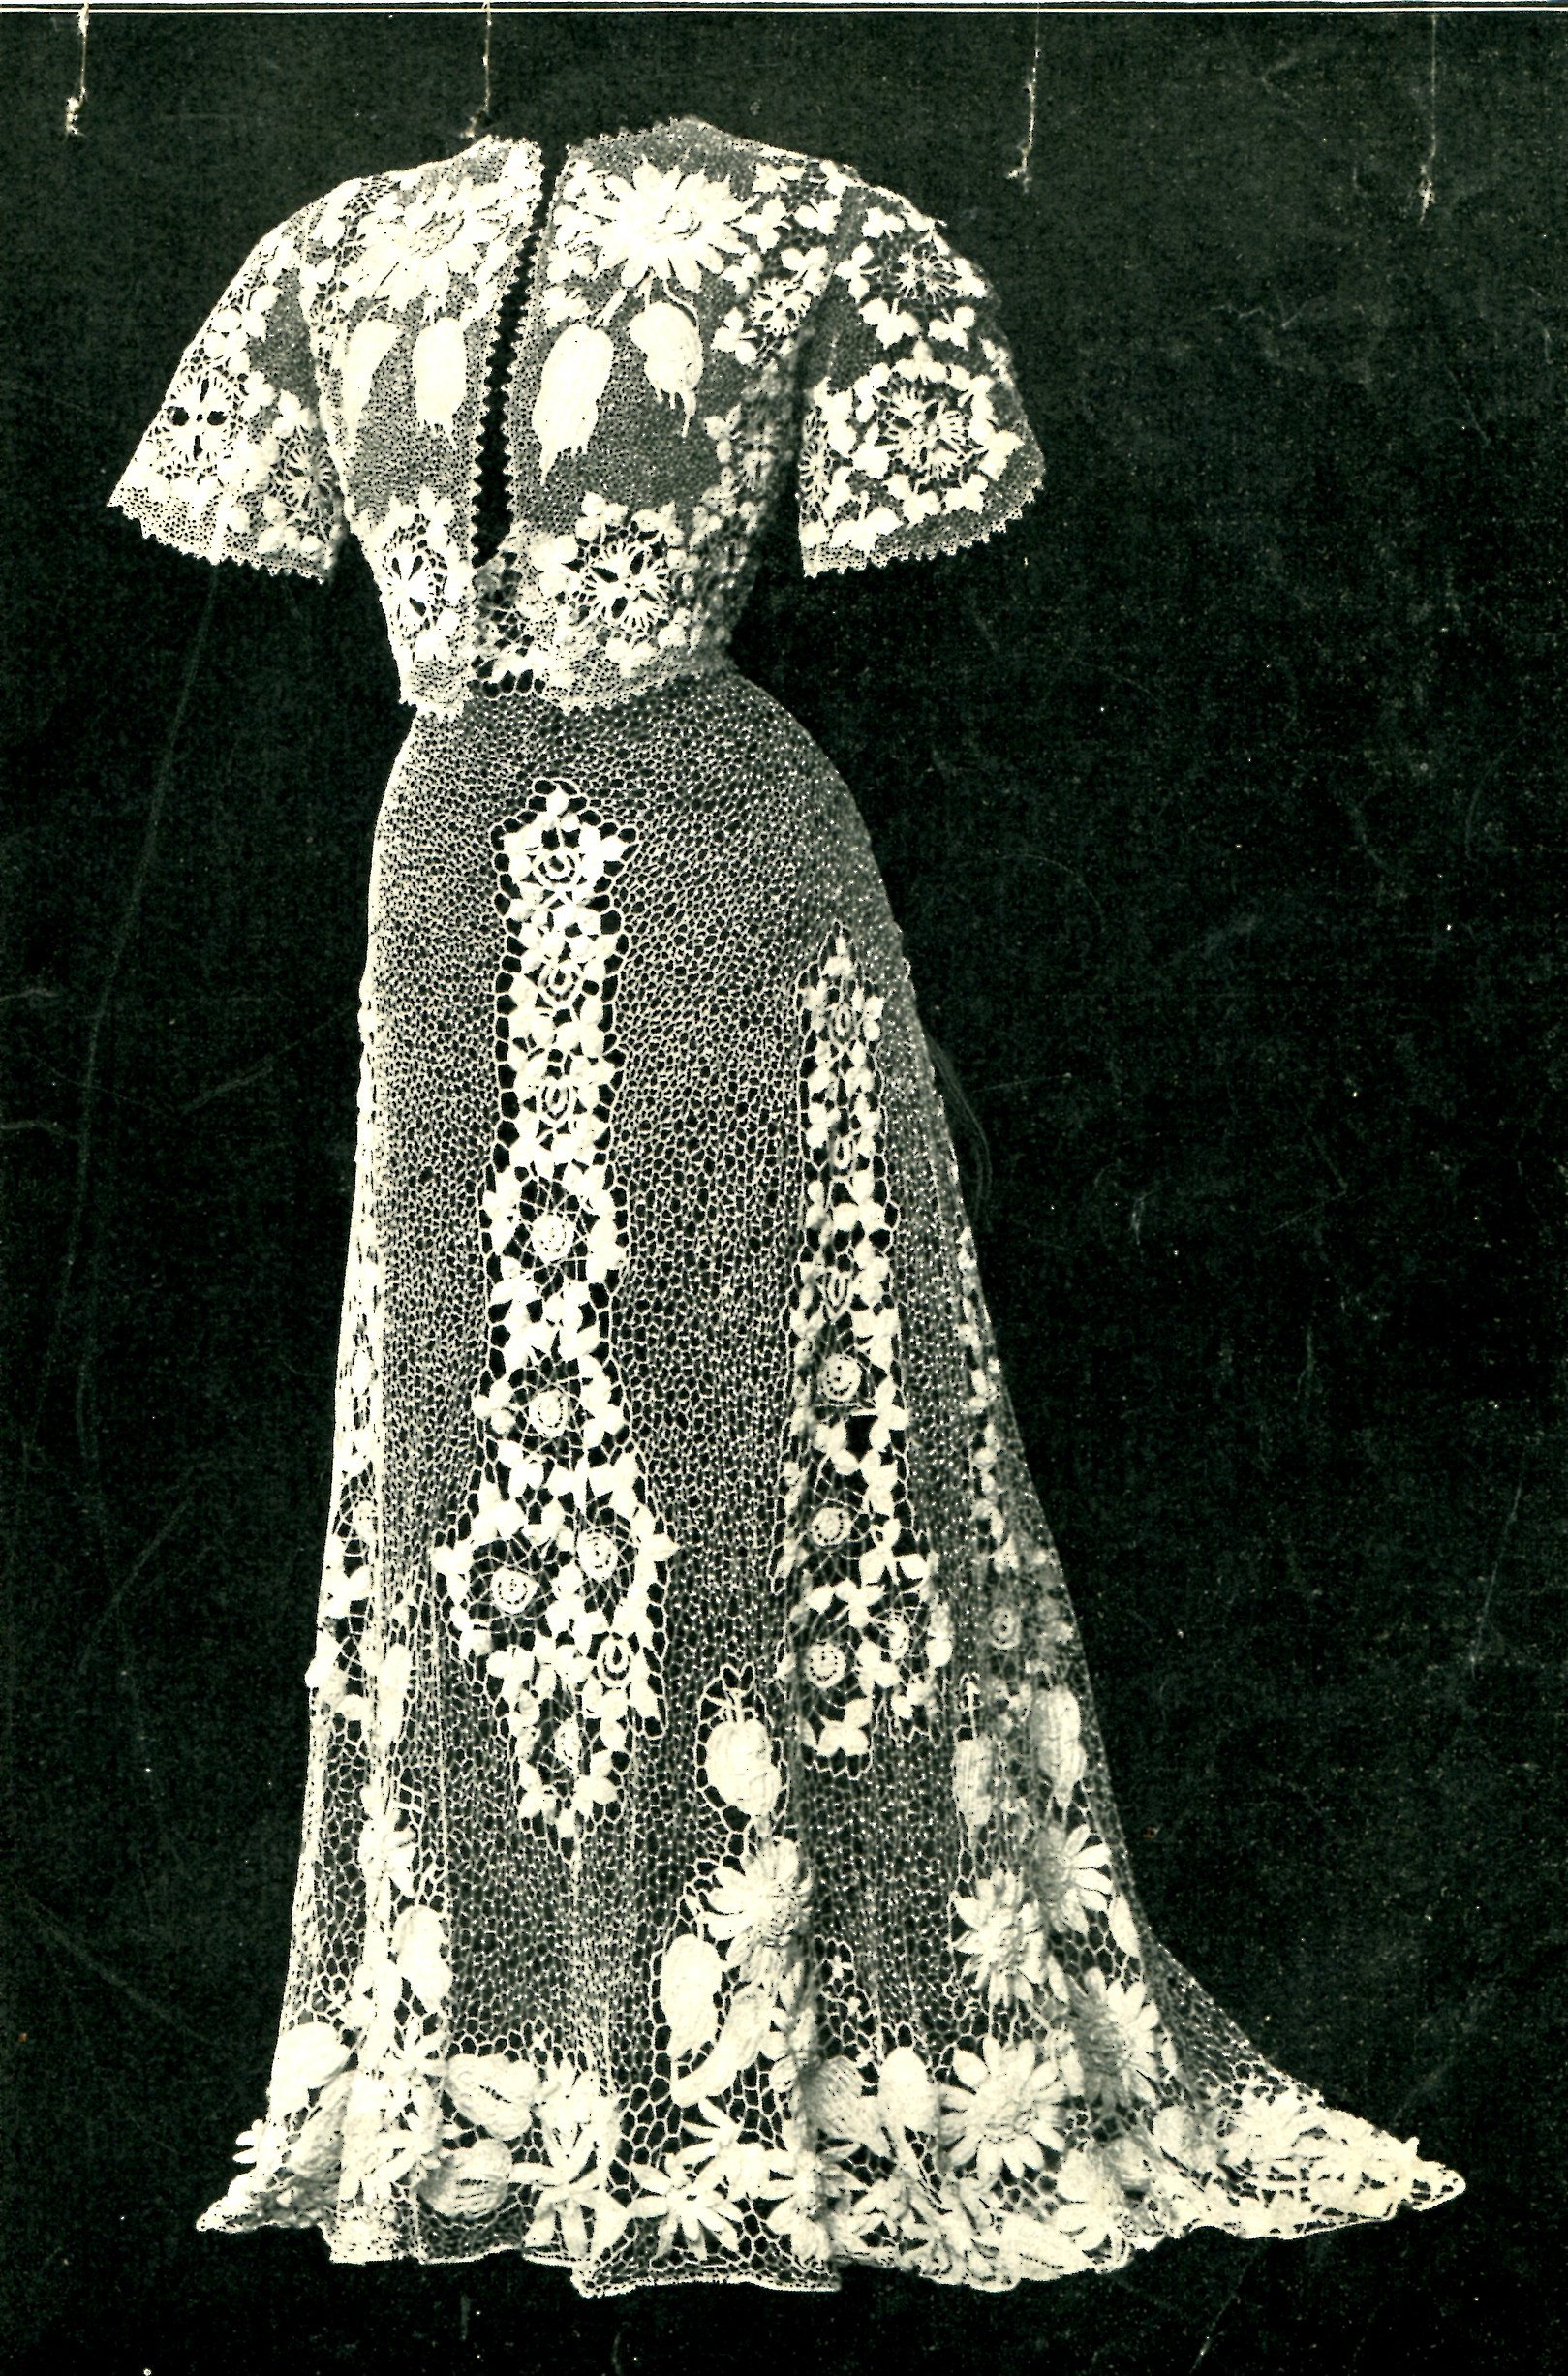 Best Of Irish Lace Archives Vintage Crafts and More Irish Lace Of Incredible 40 Ideas Irish Lace